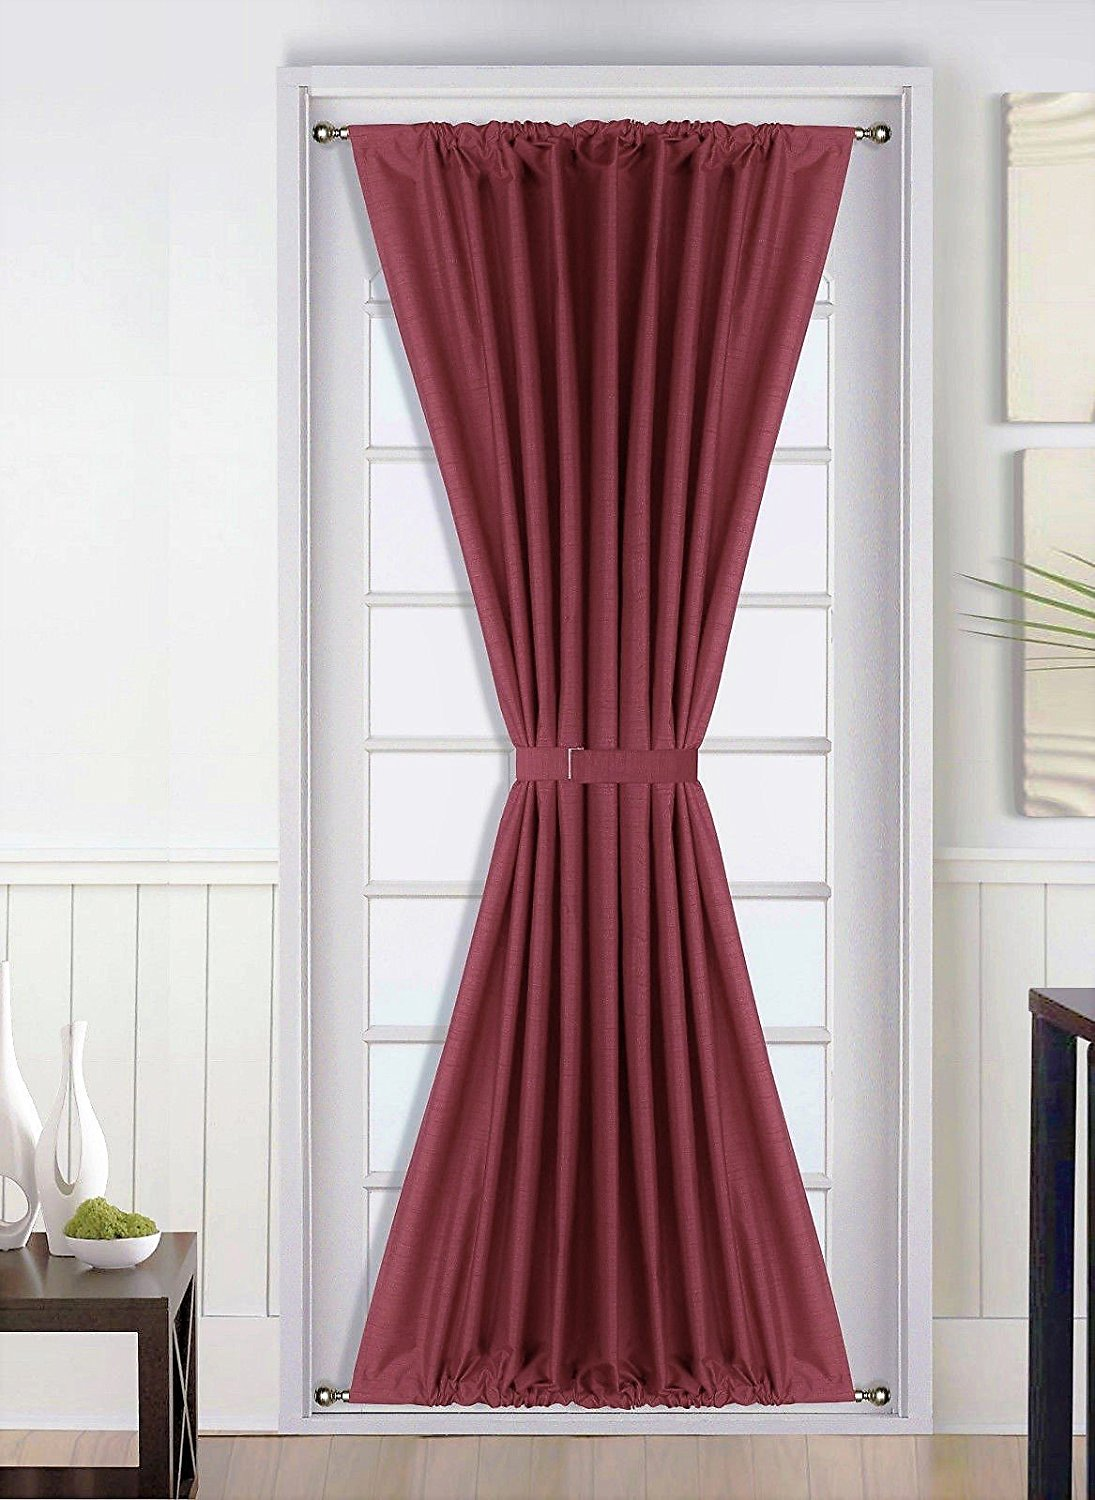 1Pc BURGUNDY Insulated Heavy Thick French Door Thermal Blackout Rod Pocket Curtain Panel with Tieback 55